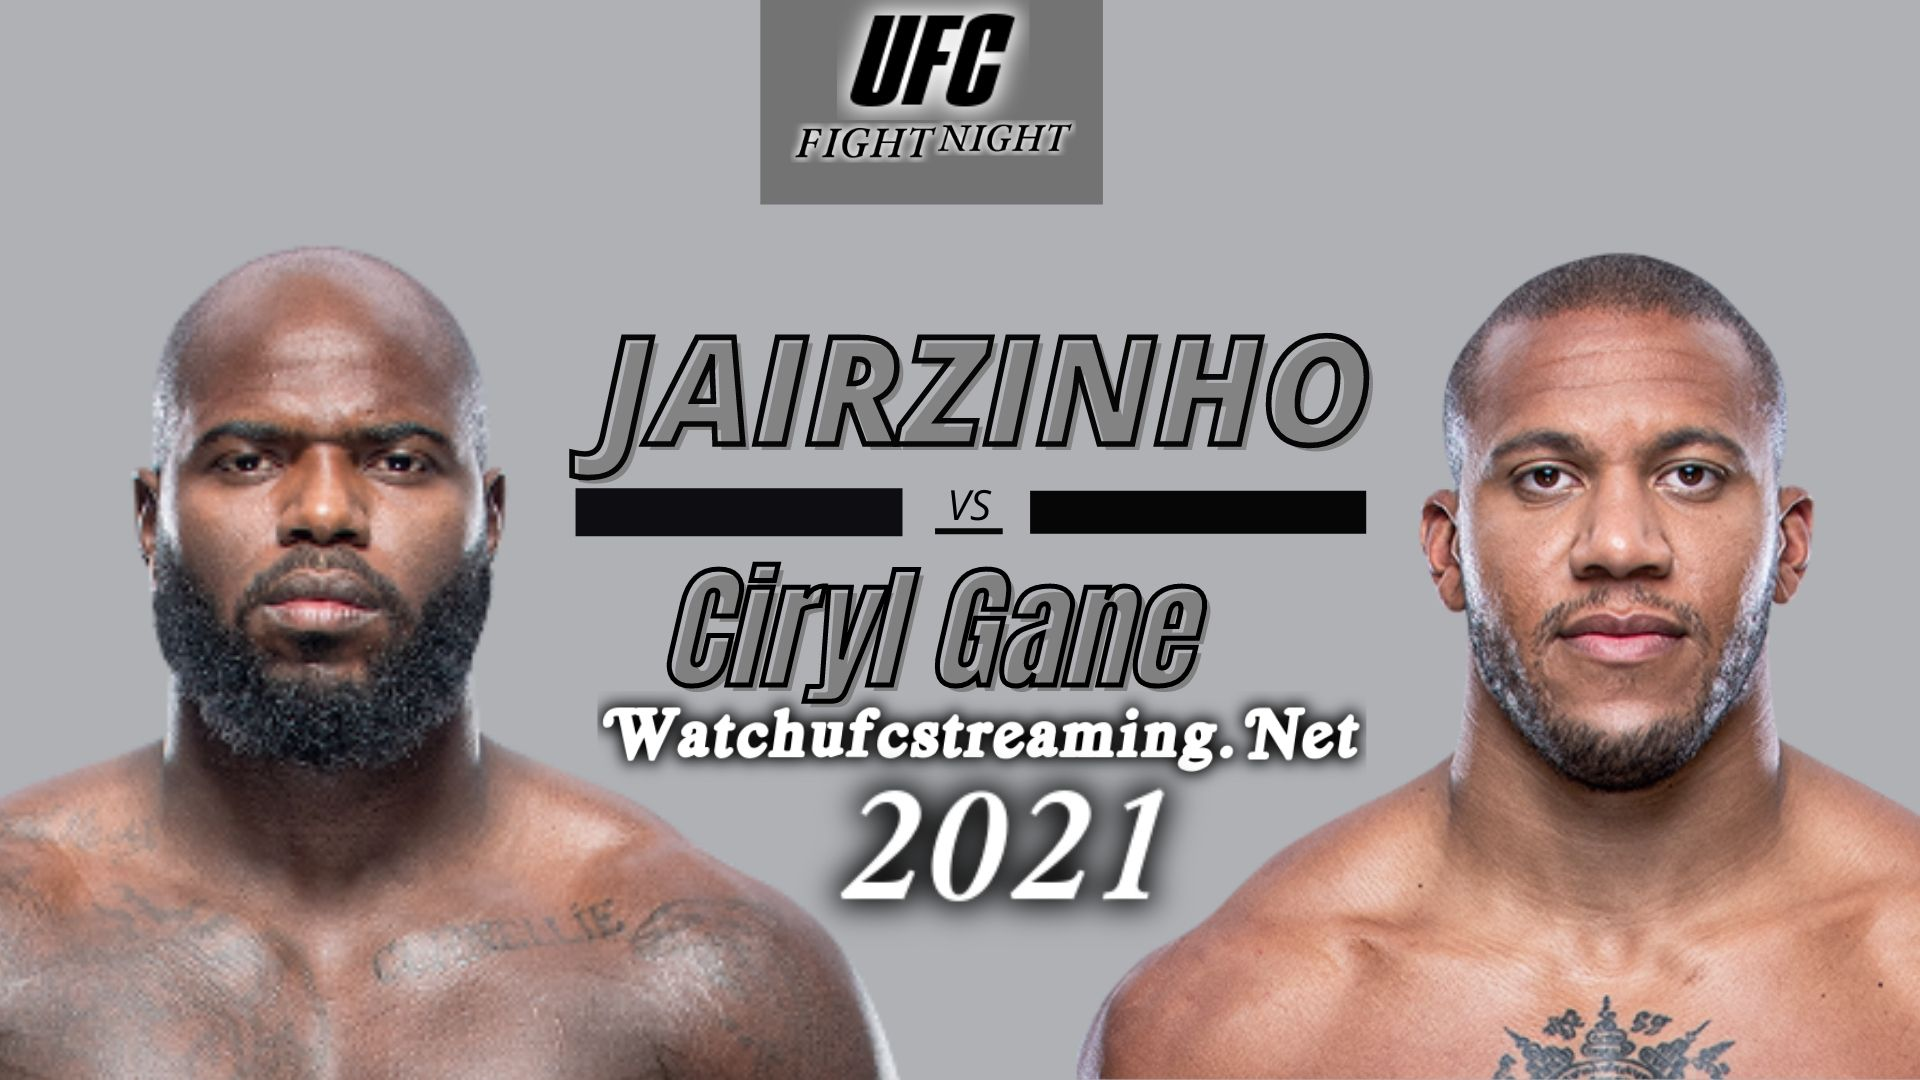 UFC - Jairzinho Rozenstruik Vs Ciryl Gane Highlights 2021 | Heavyweight